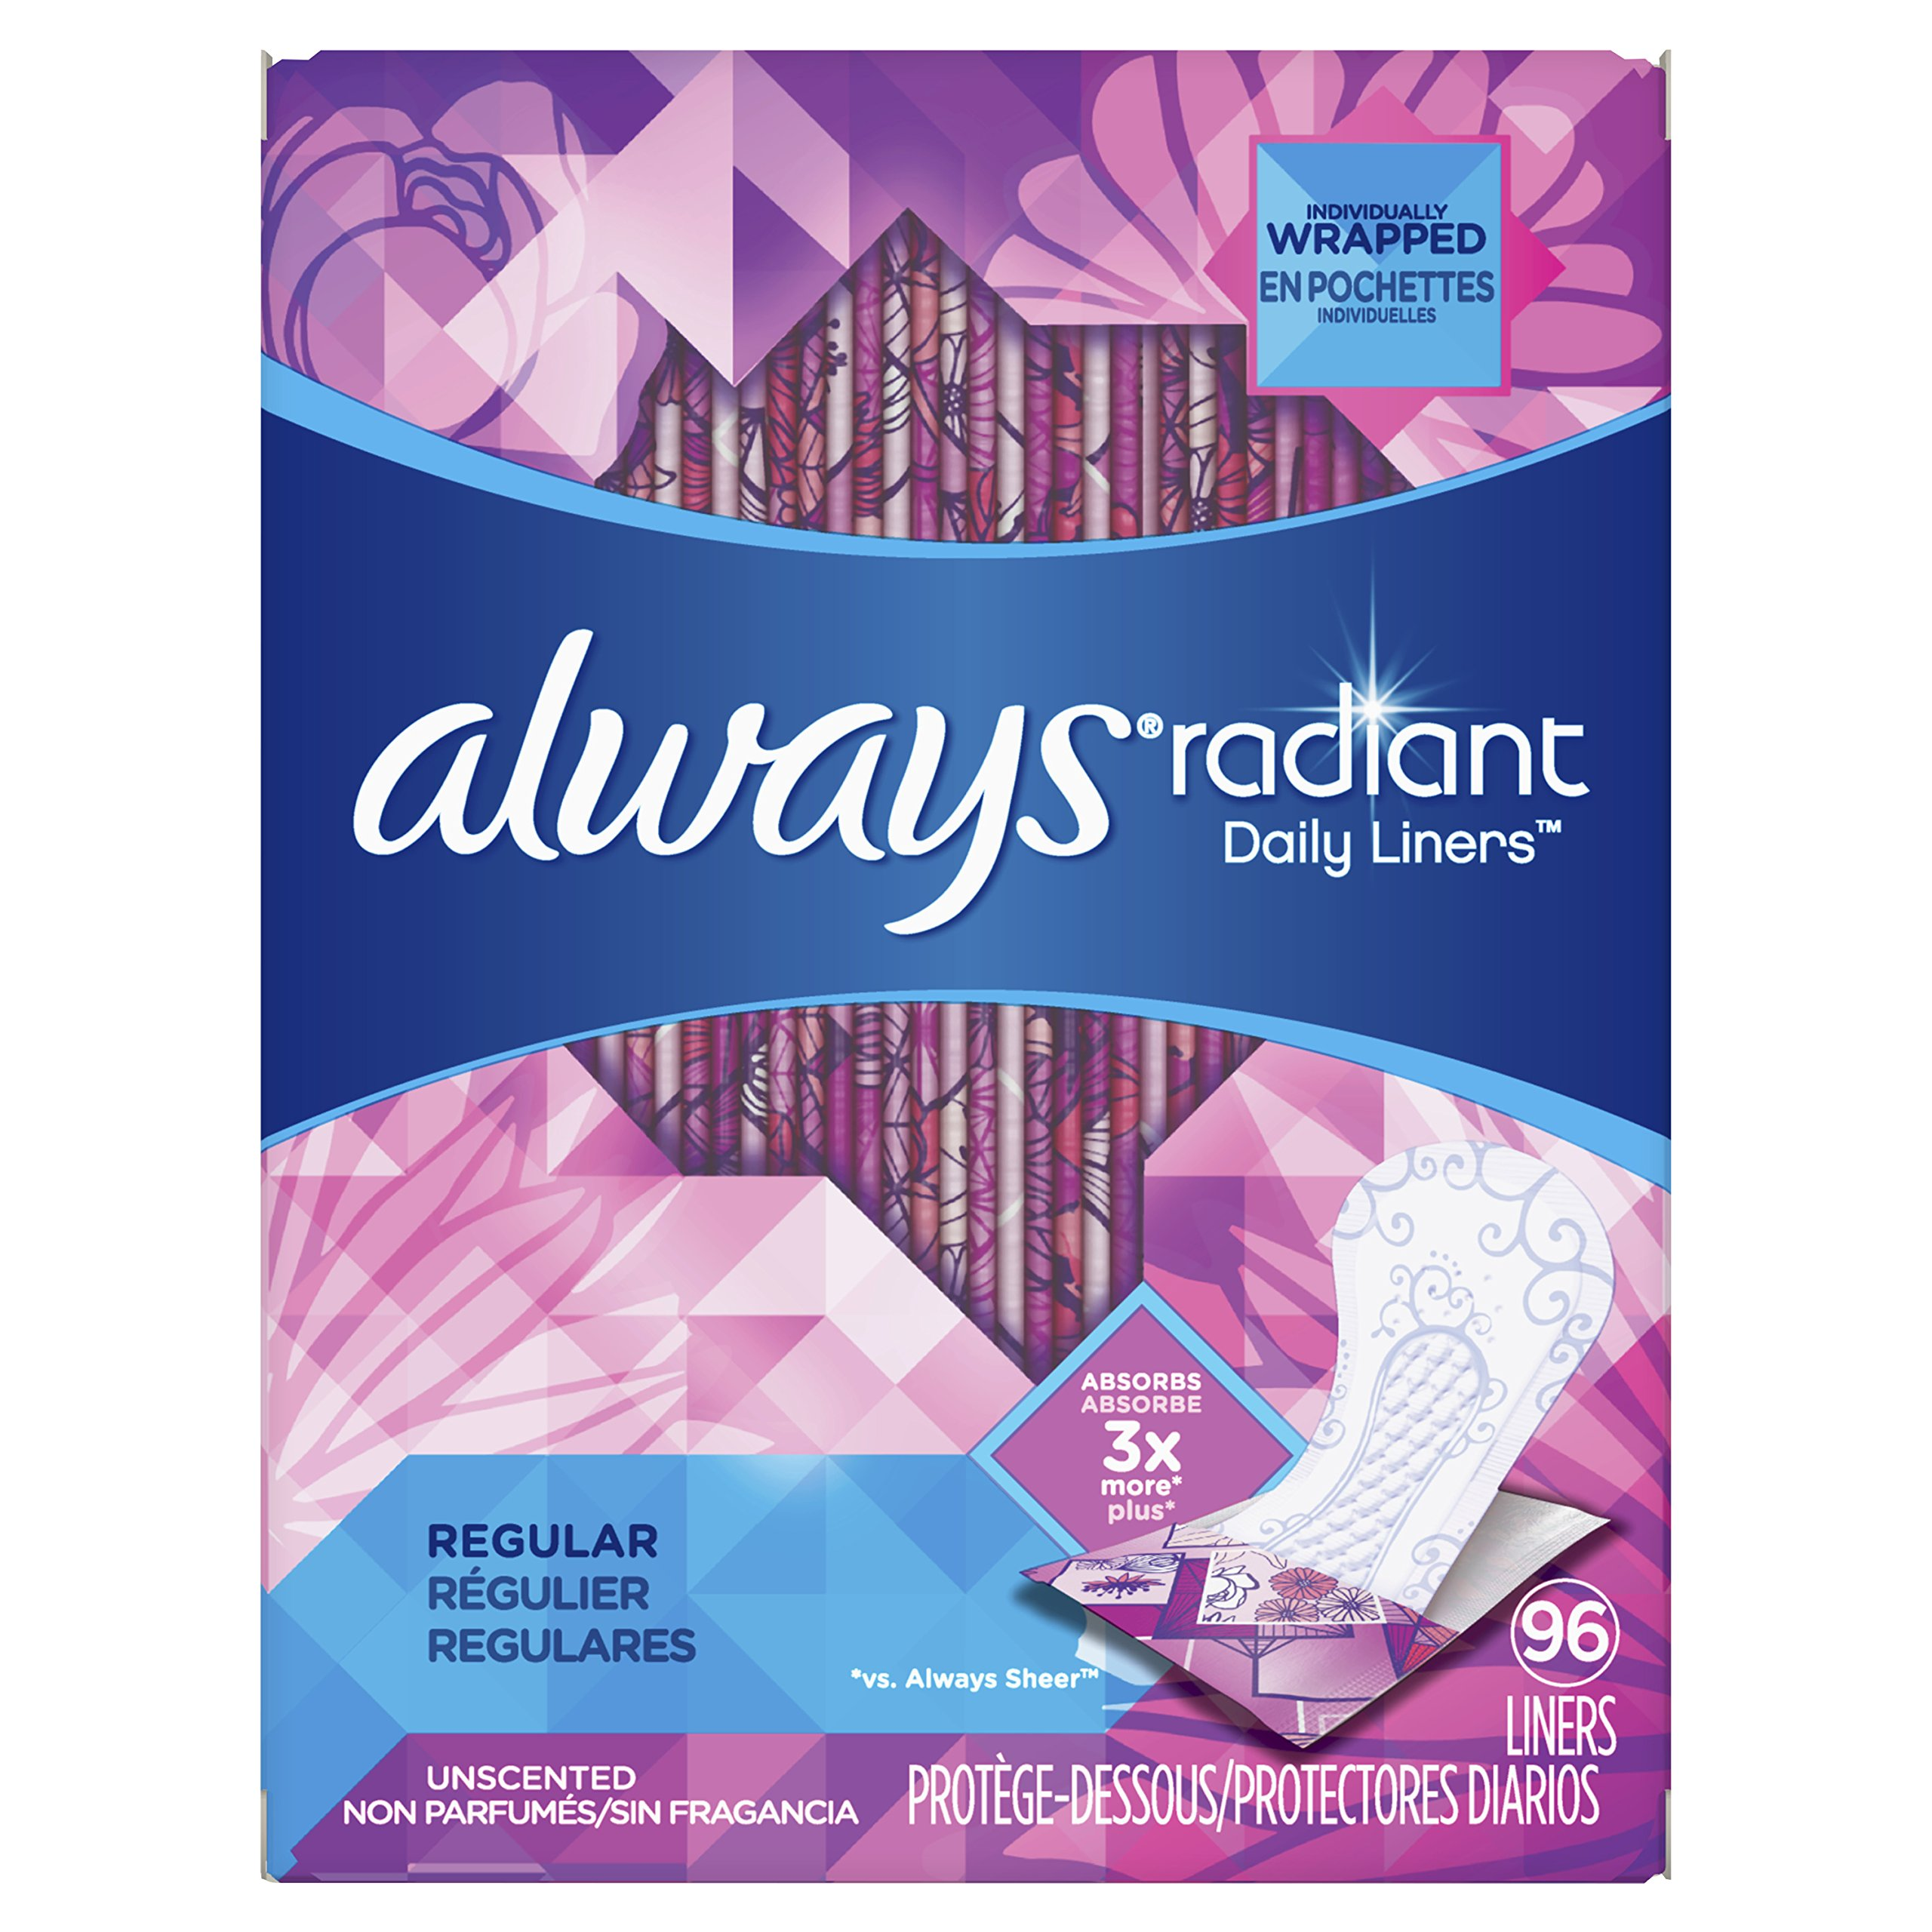 Always Radiant Liners, Unscented, 96 Count,Pack of 4 (Total 384 Count) (Packaging May Vary)